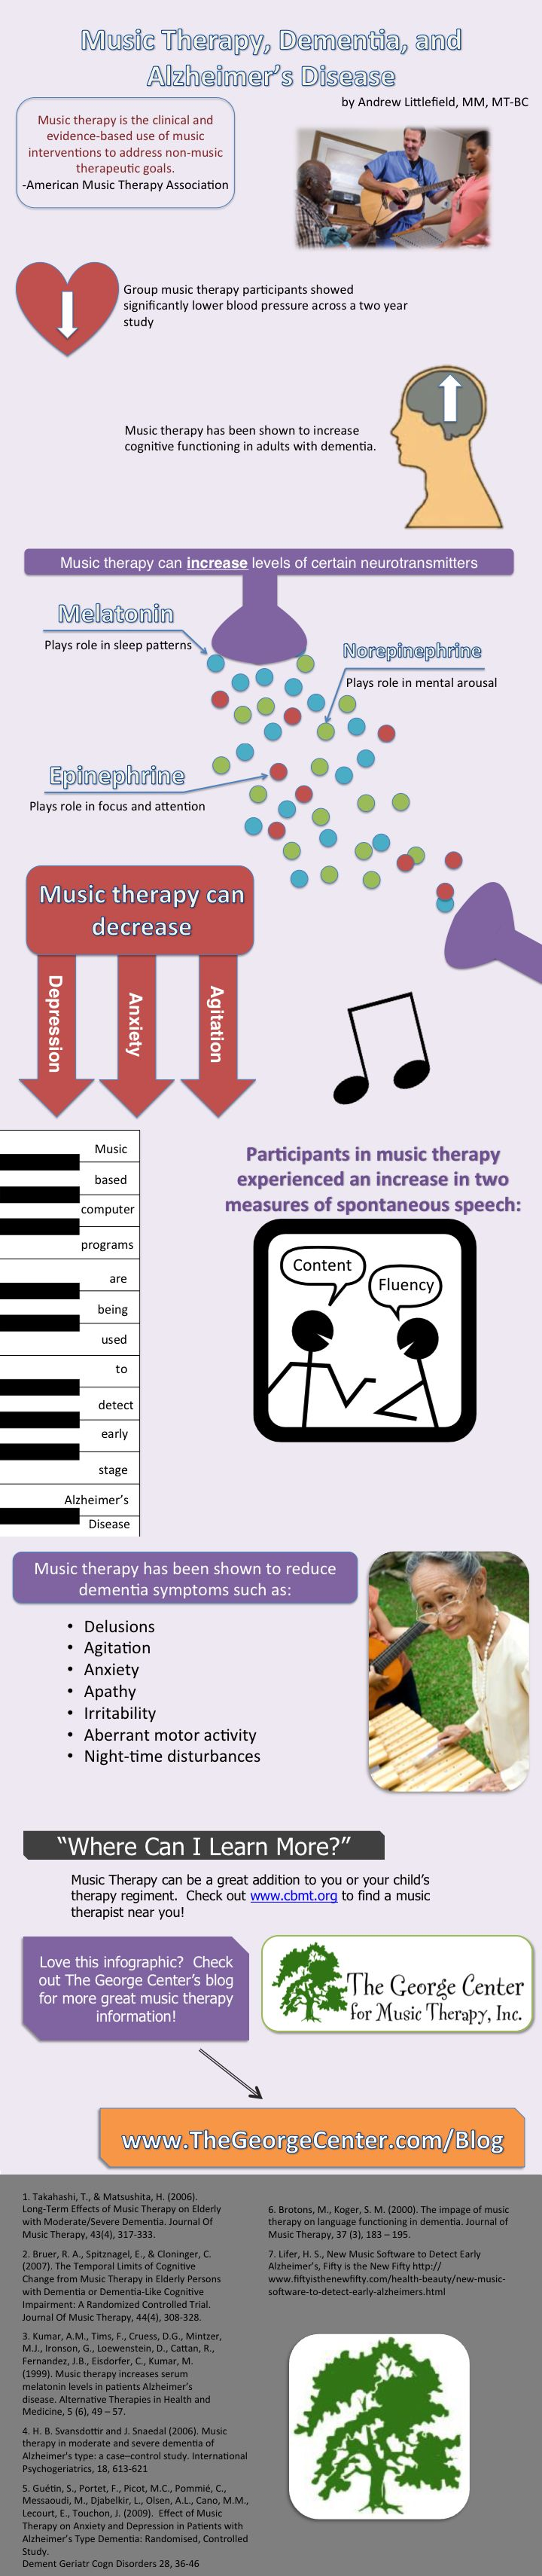 music therapy and alzheimers disease essay To evaluate the impact of a combination of caregiver support group and memory training/music therapy in dementia patients on behavioural and psychological symptoms (bpsd) and caregiver burden compared to a control group.